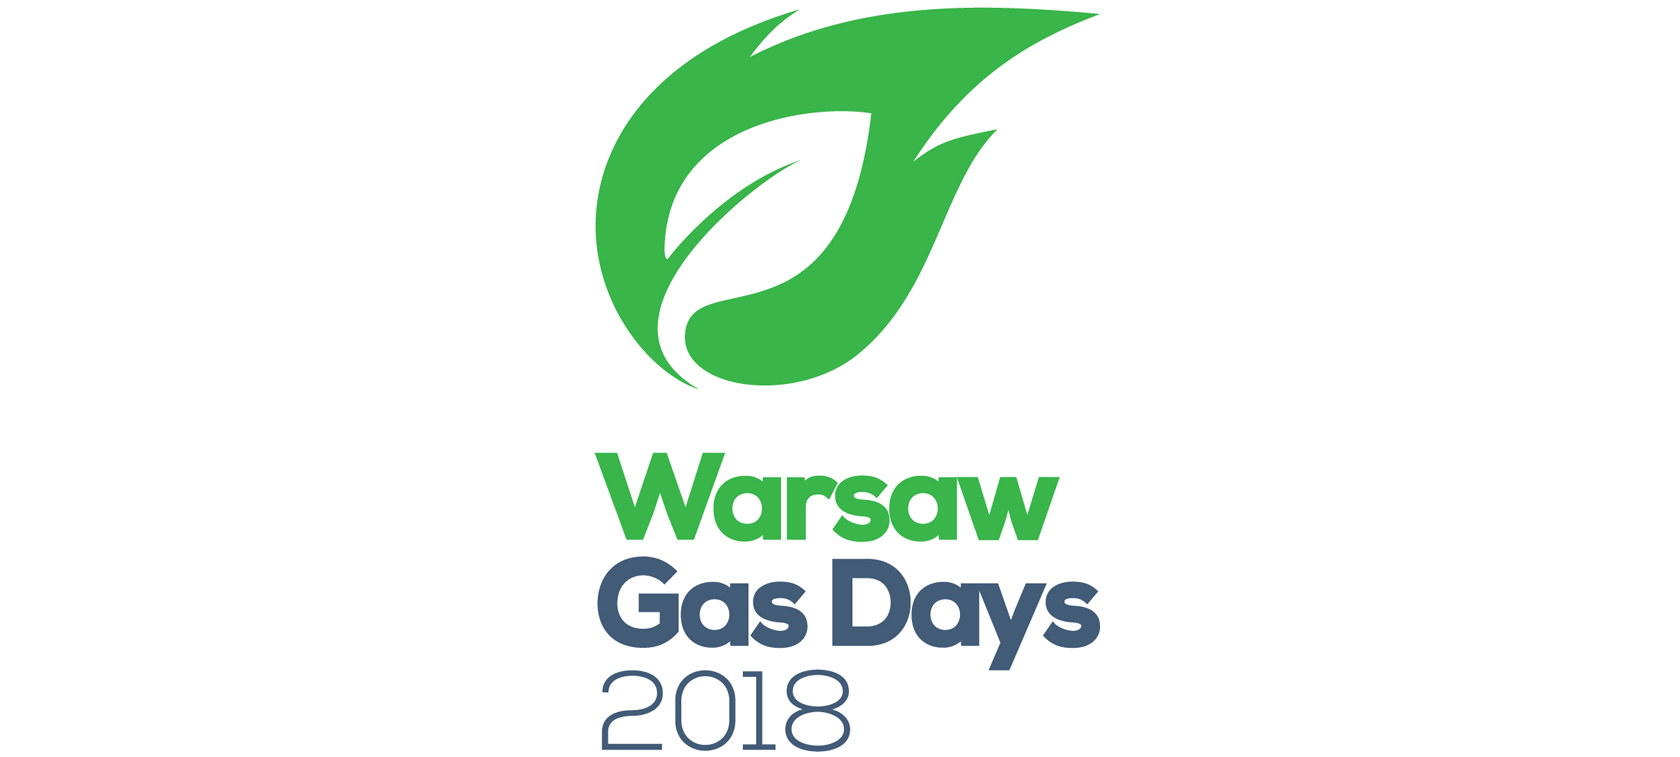 Warsaw Gas Days 2018: mark your calendars!